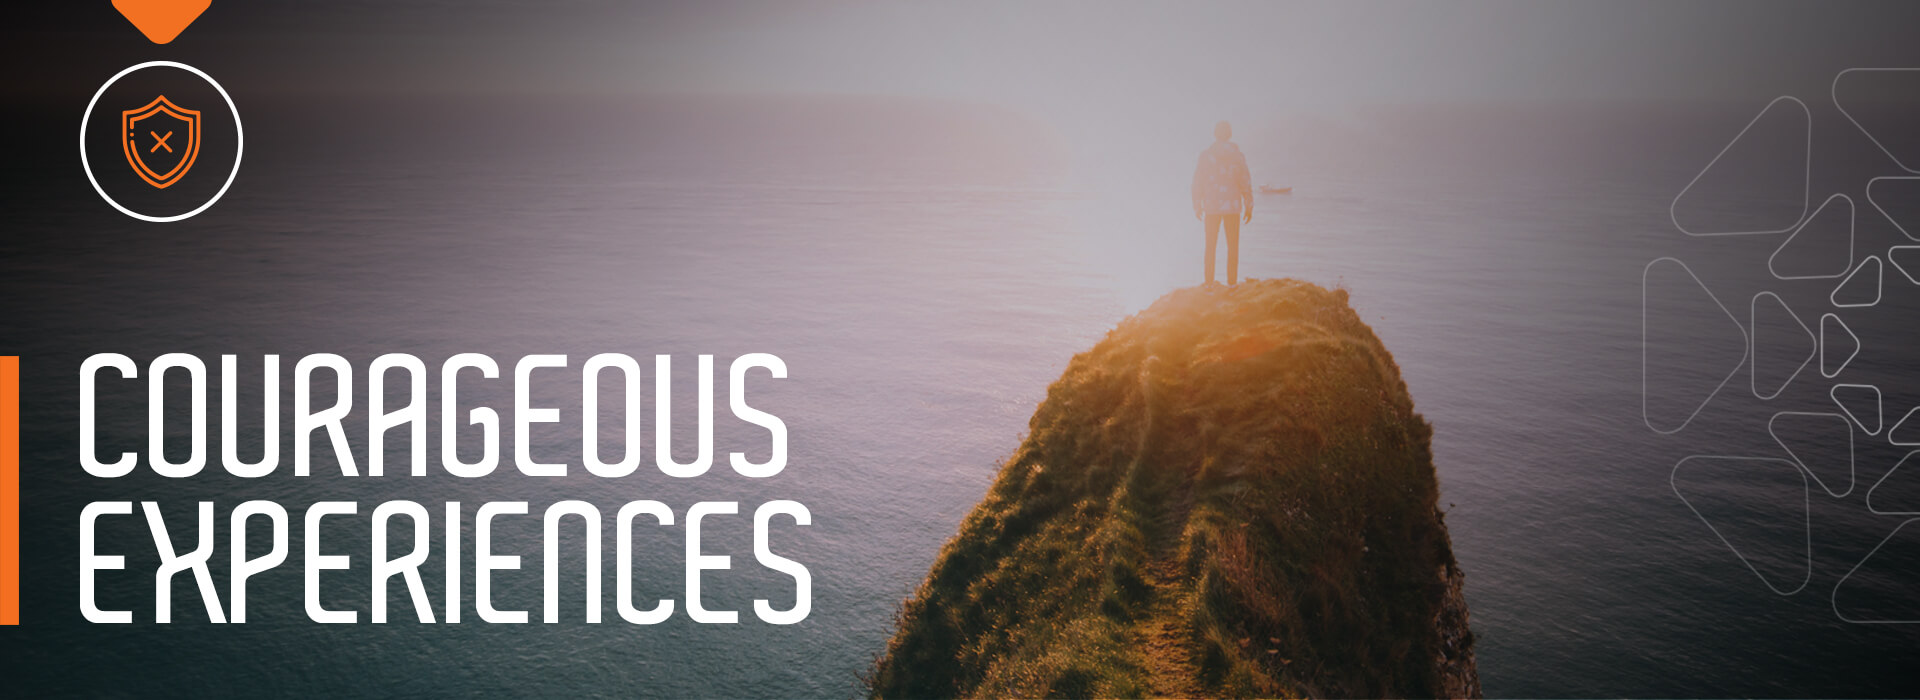 Courageous Experiences